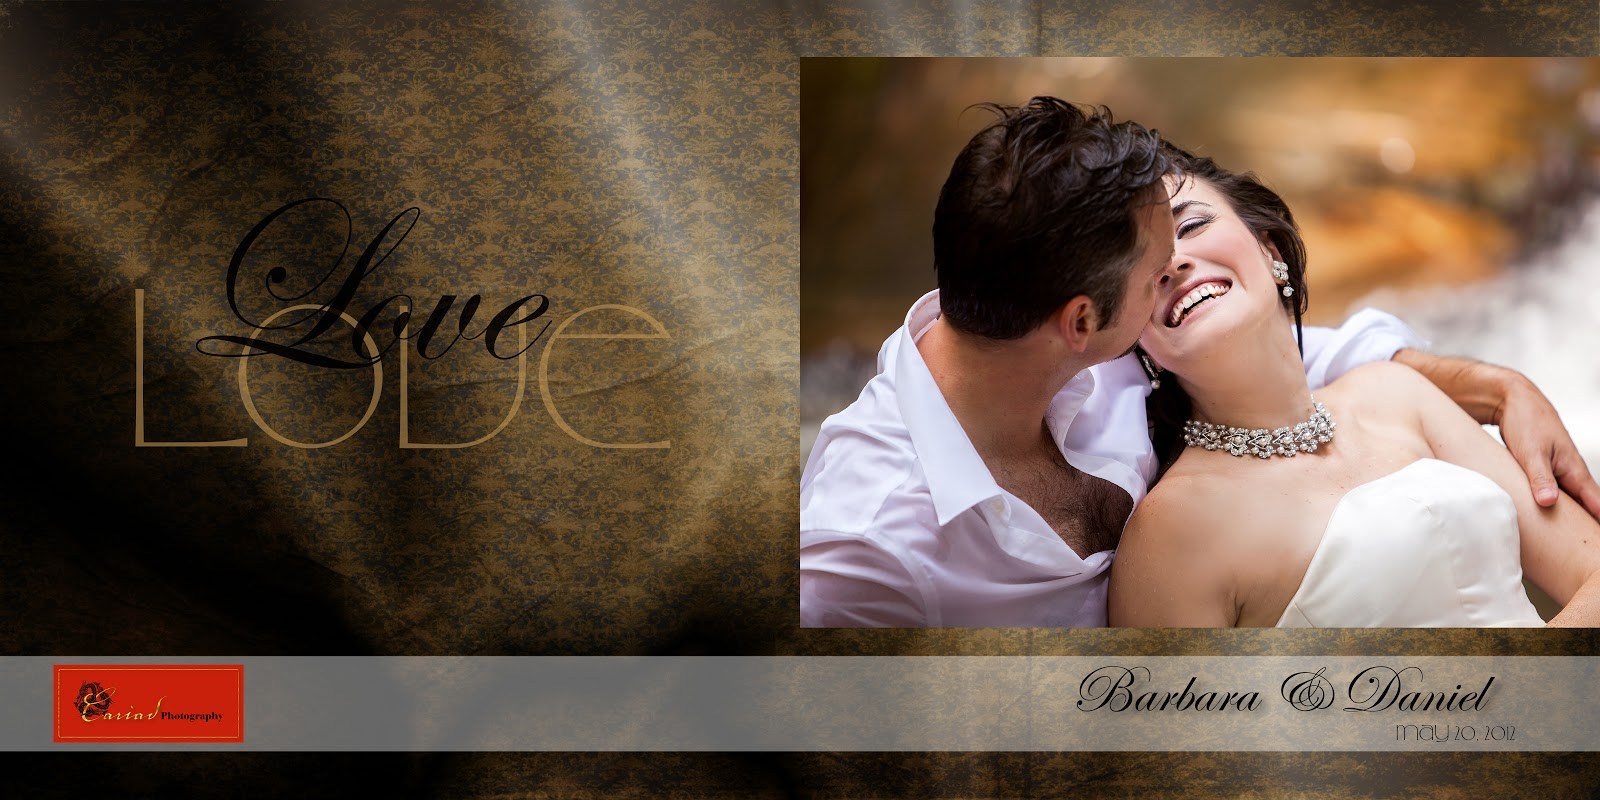 Wedding Photobook Cover Design ~ Pics for gt wedding photo book cover design